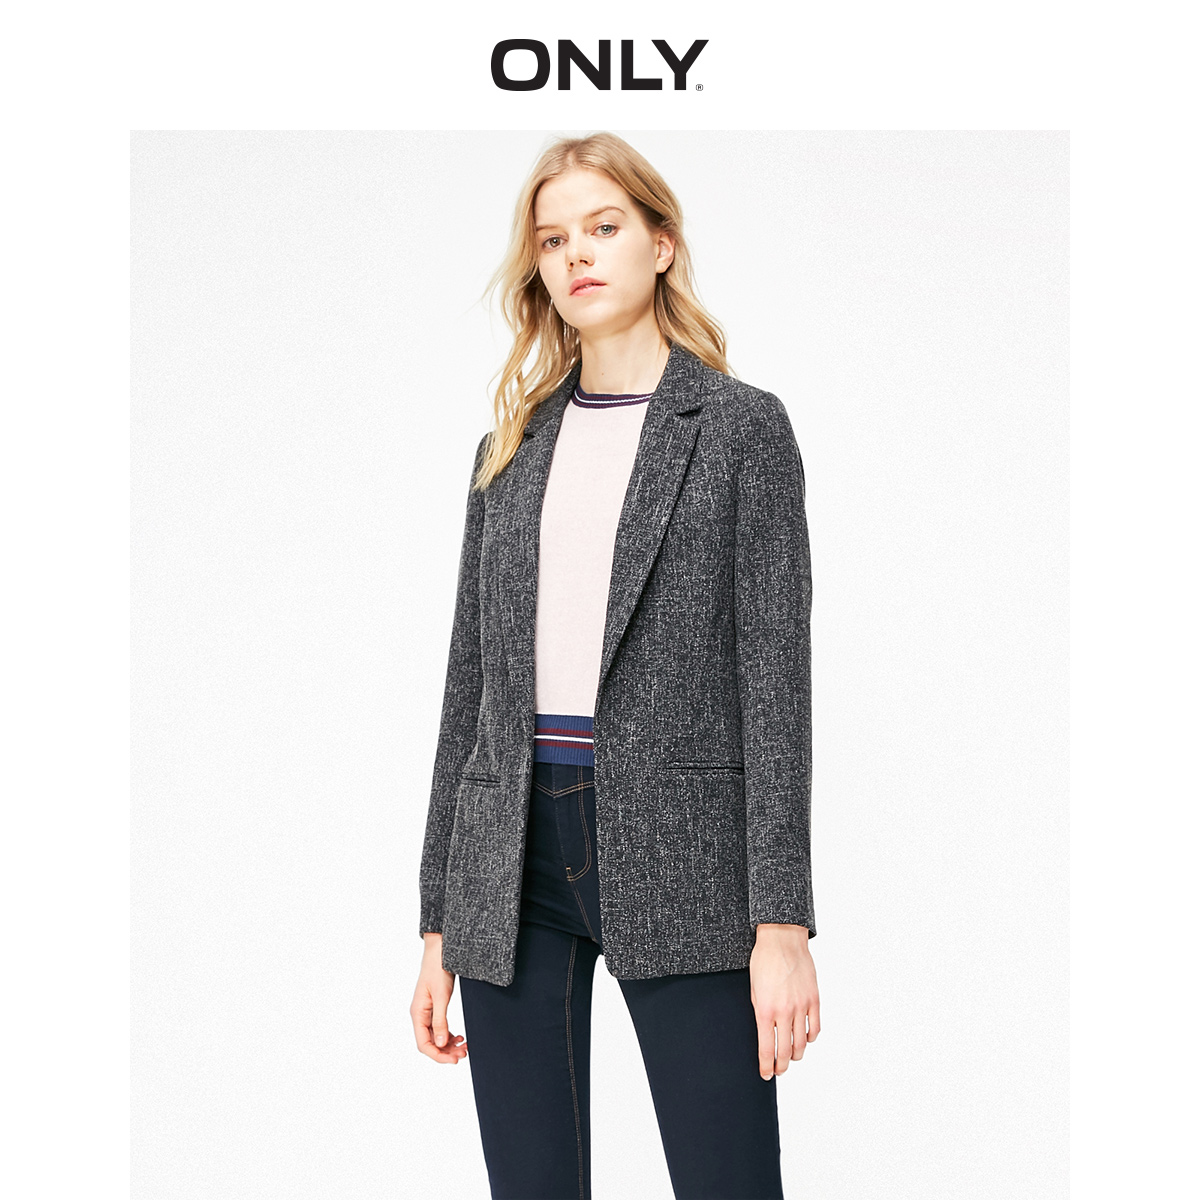 ONLY  Women's Grey Suit Jacket | 119308514